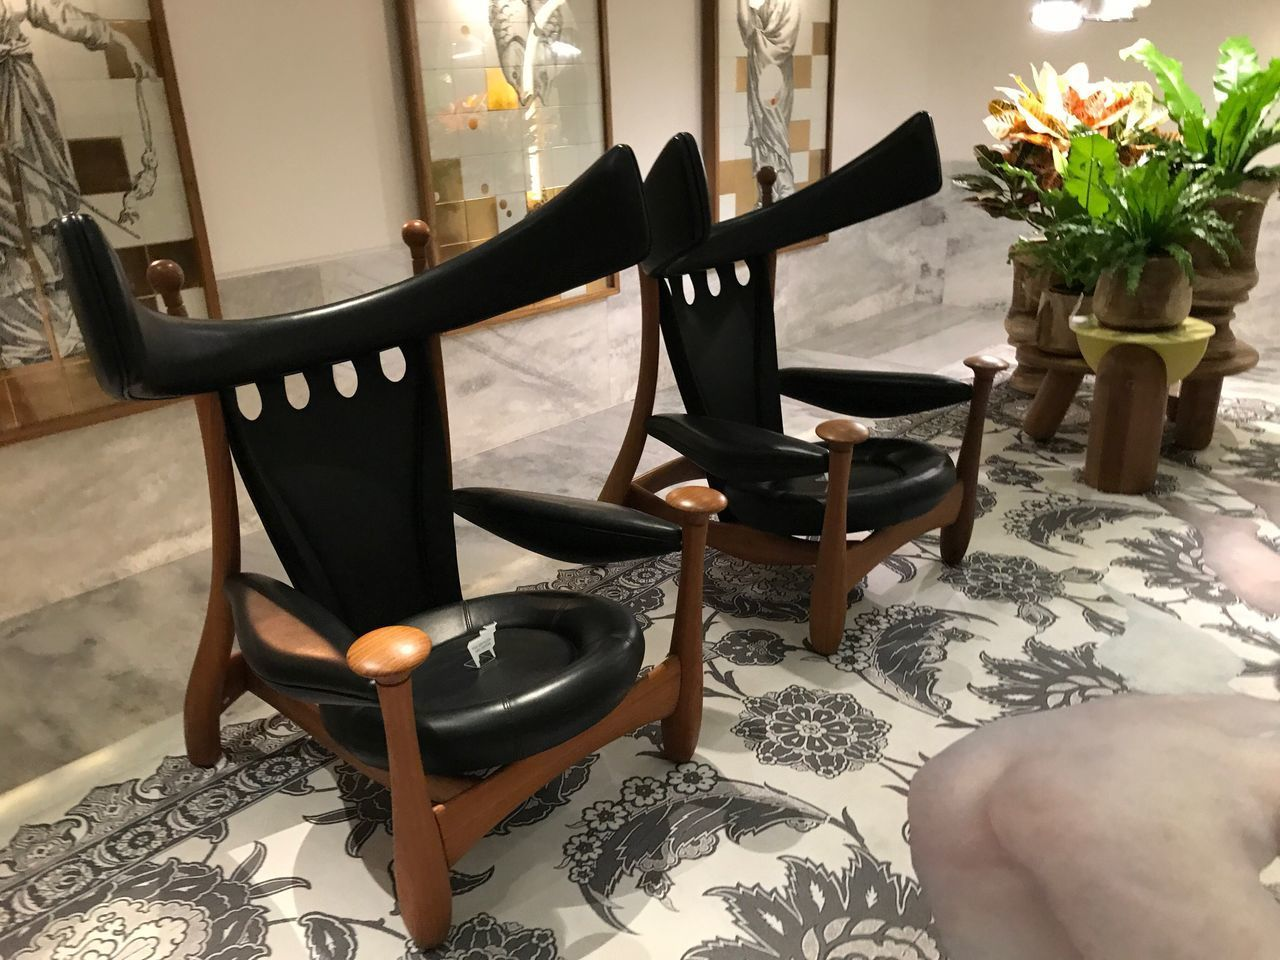 Chair Table Indoors  Home Interior Armchair Furniture Sofa Vase Seat No People Relaxation Side Table Living Room Pillow Home Showcase Interior Day Close-up